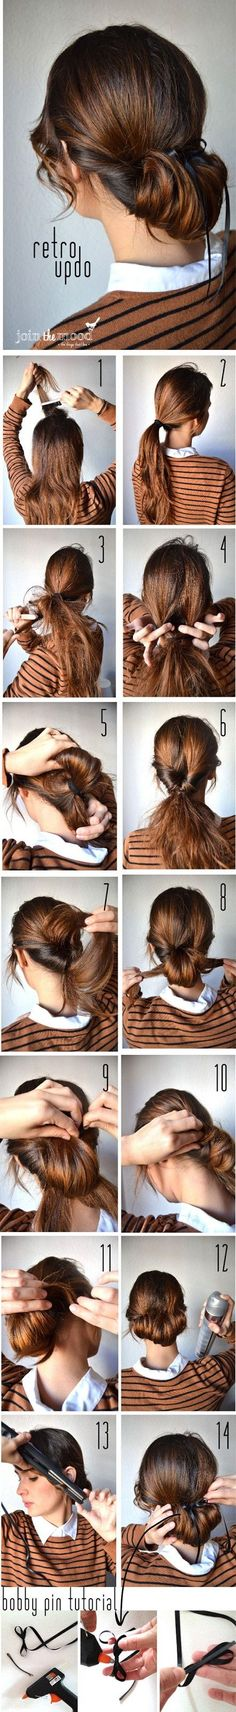 updo-hair-style-9